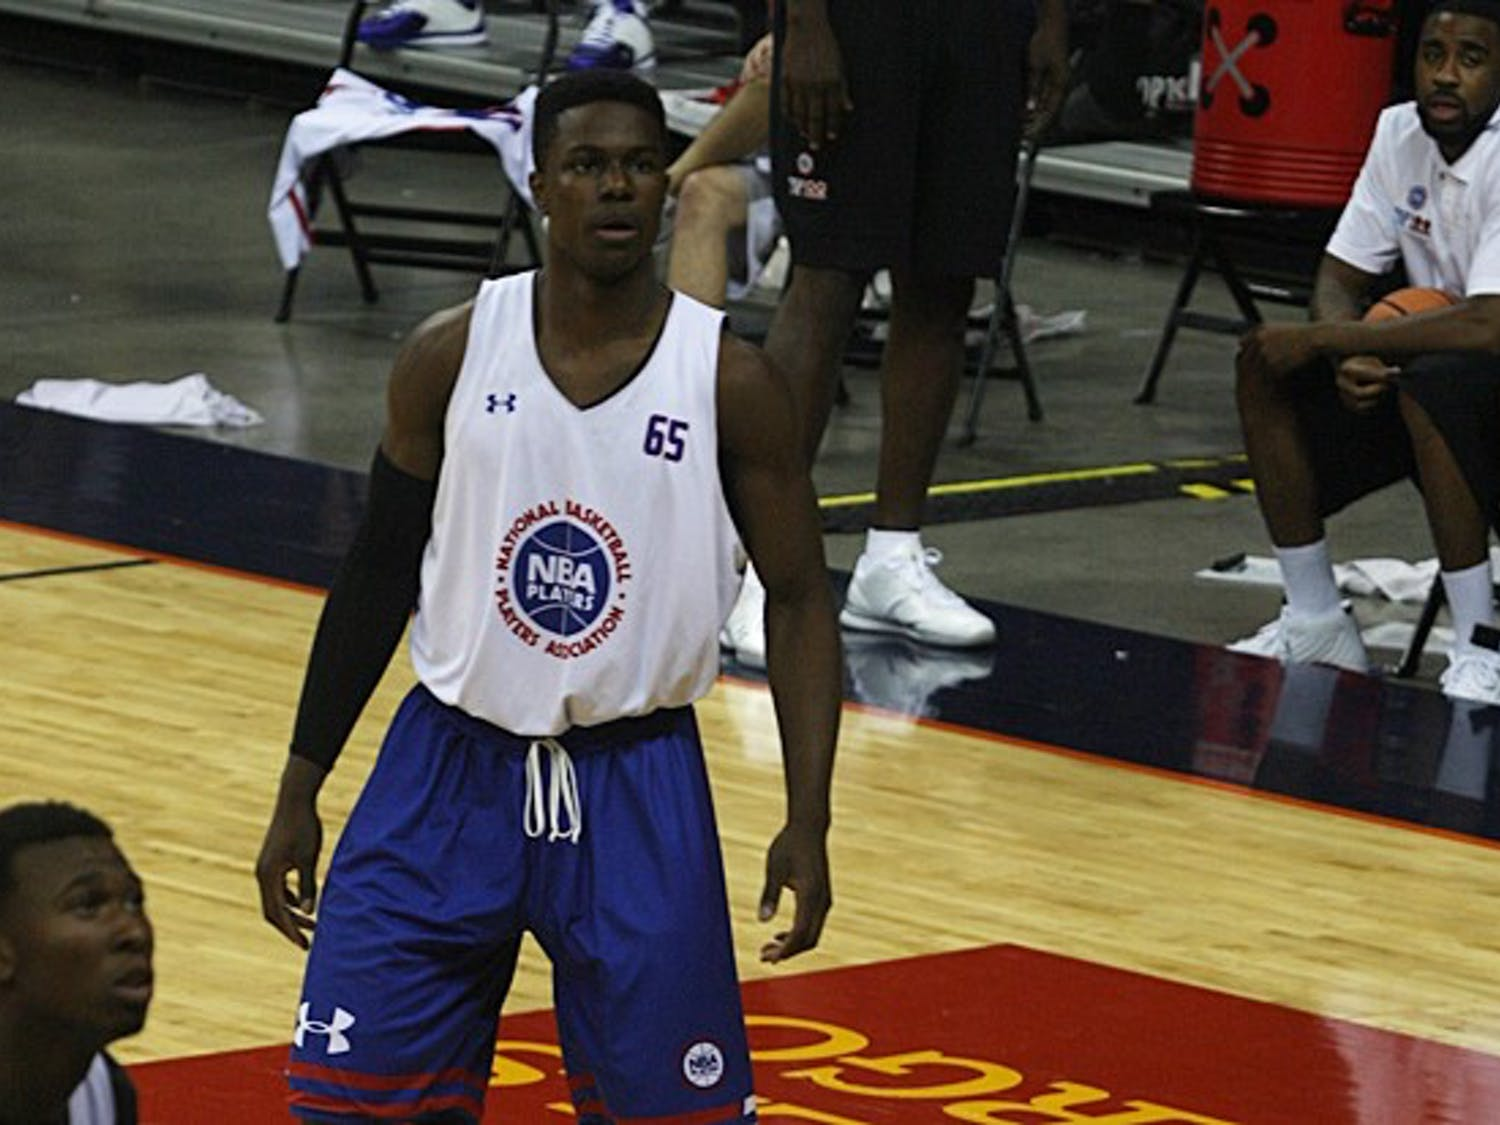 """At the NBPA Top 100 Camp in June, Semi Ojeleye told The Chronicle Duke """"has been coming on strong the past couple months."""""""